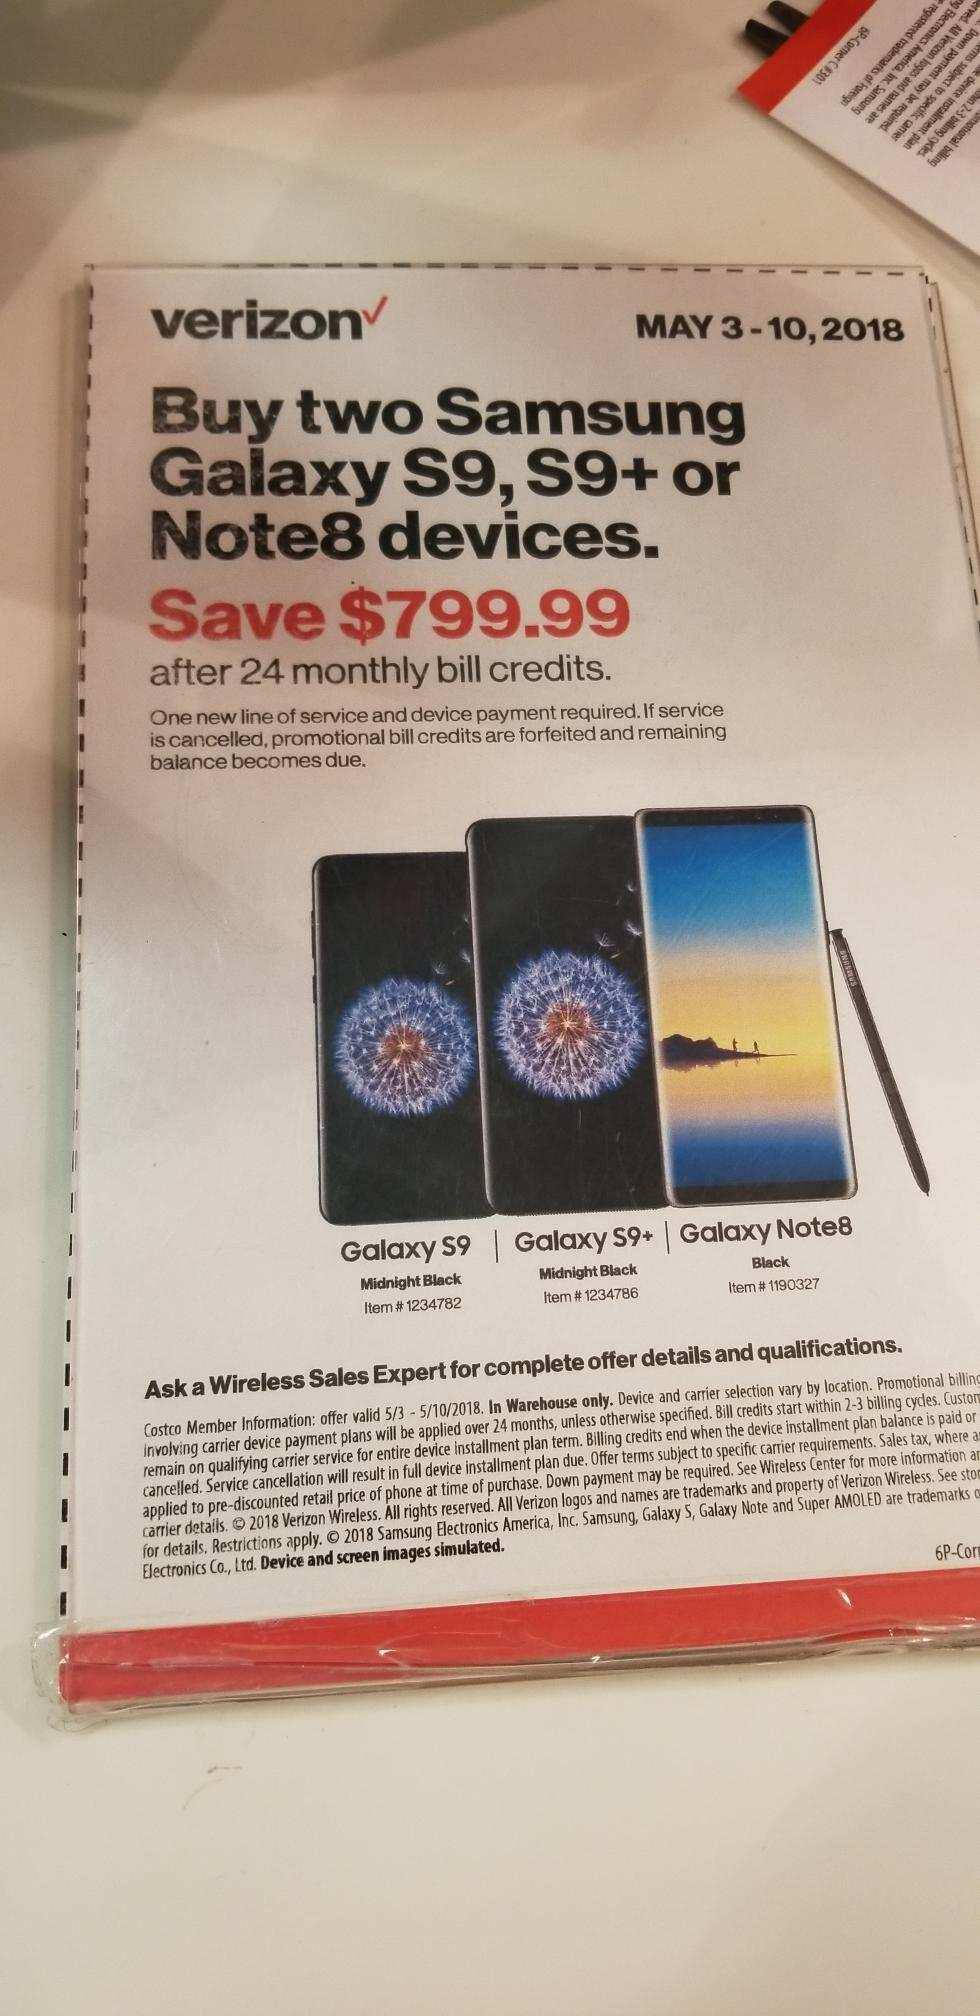 Costco In-Store: Verizon Samsung Galaxy S9, S9+, or Note8 buy two and save $799 in bill credits. *One line must be new*